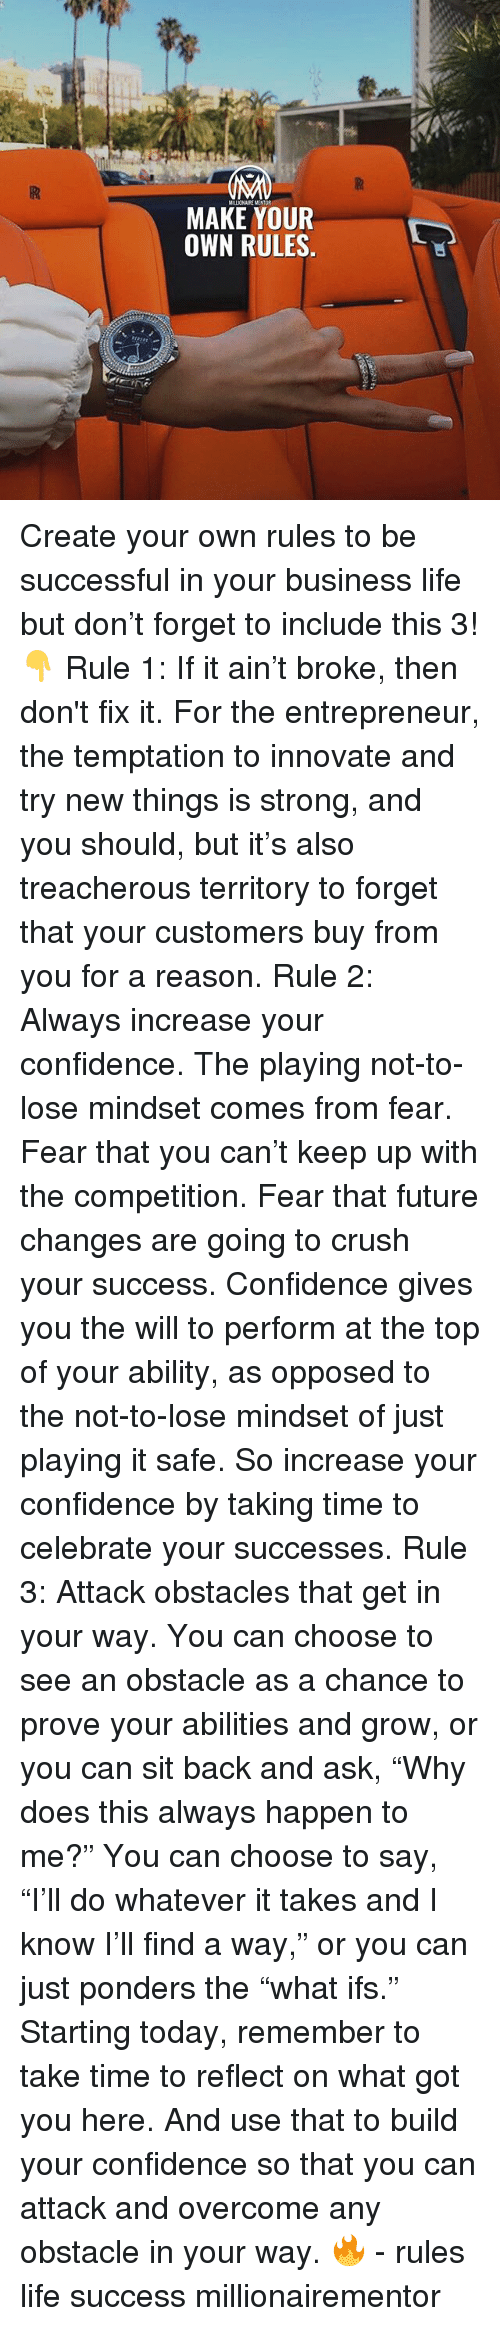 "Confidence, Crush, and Future: MAKE YOUR  OWN RULES. Create your own rules to be successful in your business life but don't forget to include this 3!👇 Rule 1: If it ain't broke, then don't fix it. For the entrepreneur, the temptation to innovate and try new things is strong, and you should, but it's also treacherous territory to forget that your customers buy from you for a reason. Rule 2: Always increase your confidence. The playing not-to-lose mindset comes from fear. Fear that you can't keep up with the competition. Fear that future changes are going to crush your success. Confidence gives you the will to perform at the top of your ability, as opposed to the not-to-lose mindset of just playing it safe. So increase your confidence by taking time to celebrate your successes. Rule 3: Attack obstacles that get in your way. You can choose to see an obstacle as a chance to prove your abilities and grow, or you can sit back and ask, ""Why does this always happen to me?"" You can choose to say, ""I'll do whatever it takes and I know I'll find a way,"" or you can just ponders the ""what ifs."" Starting today, remember to take time to reflect on what got you here. And use that to build your confidence so that you can attack and overcome any obstacle in your way. 🔥 - rules life success millionairementor"